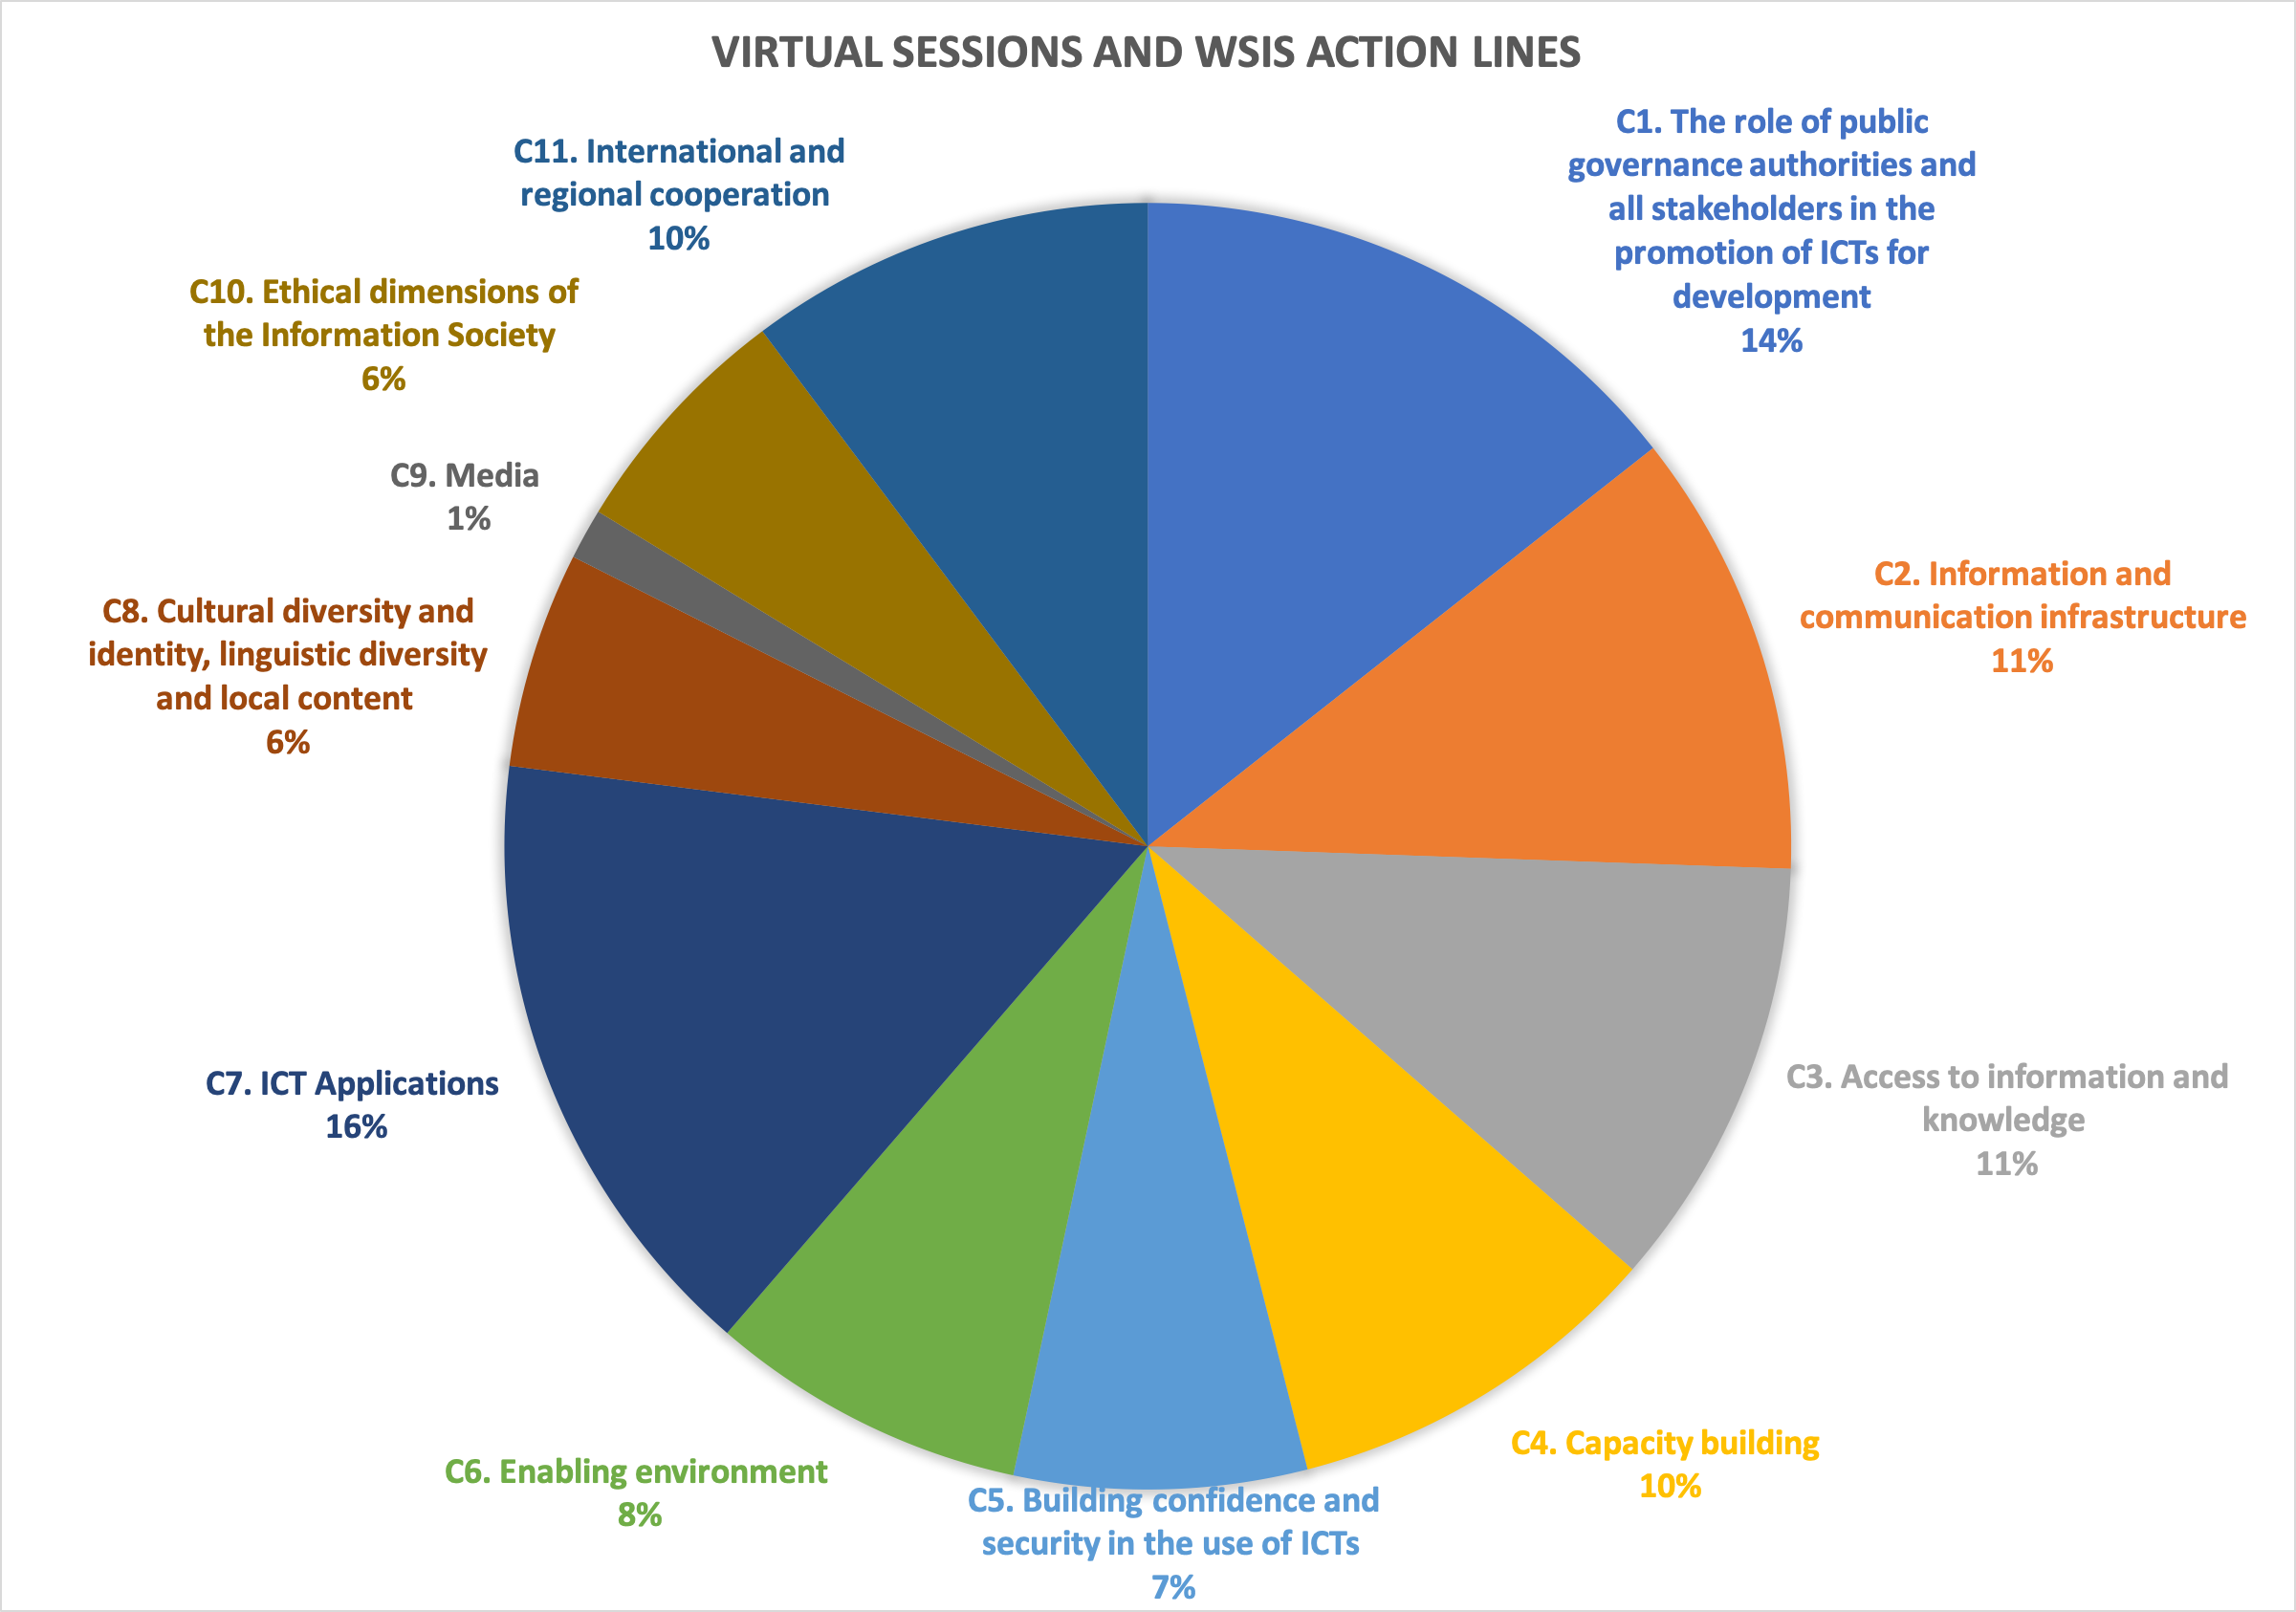 Virtual sessions and WSIS action lines